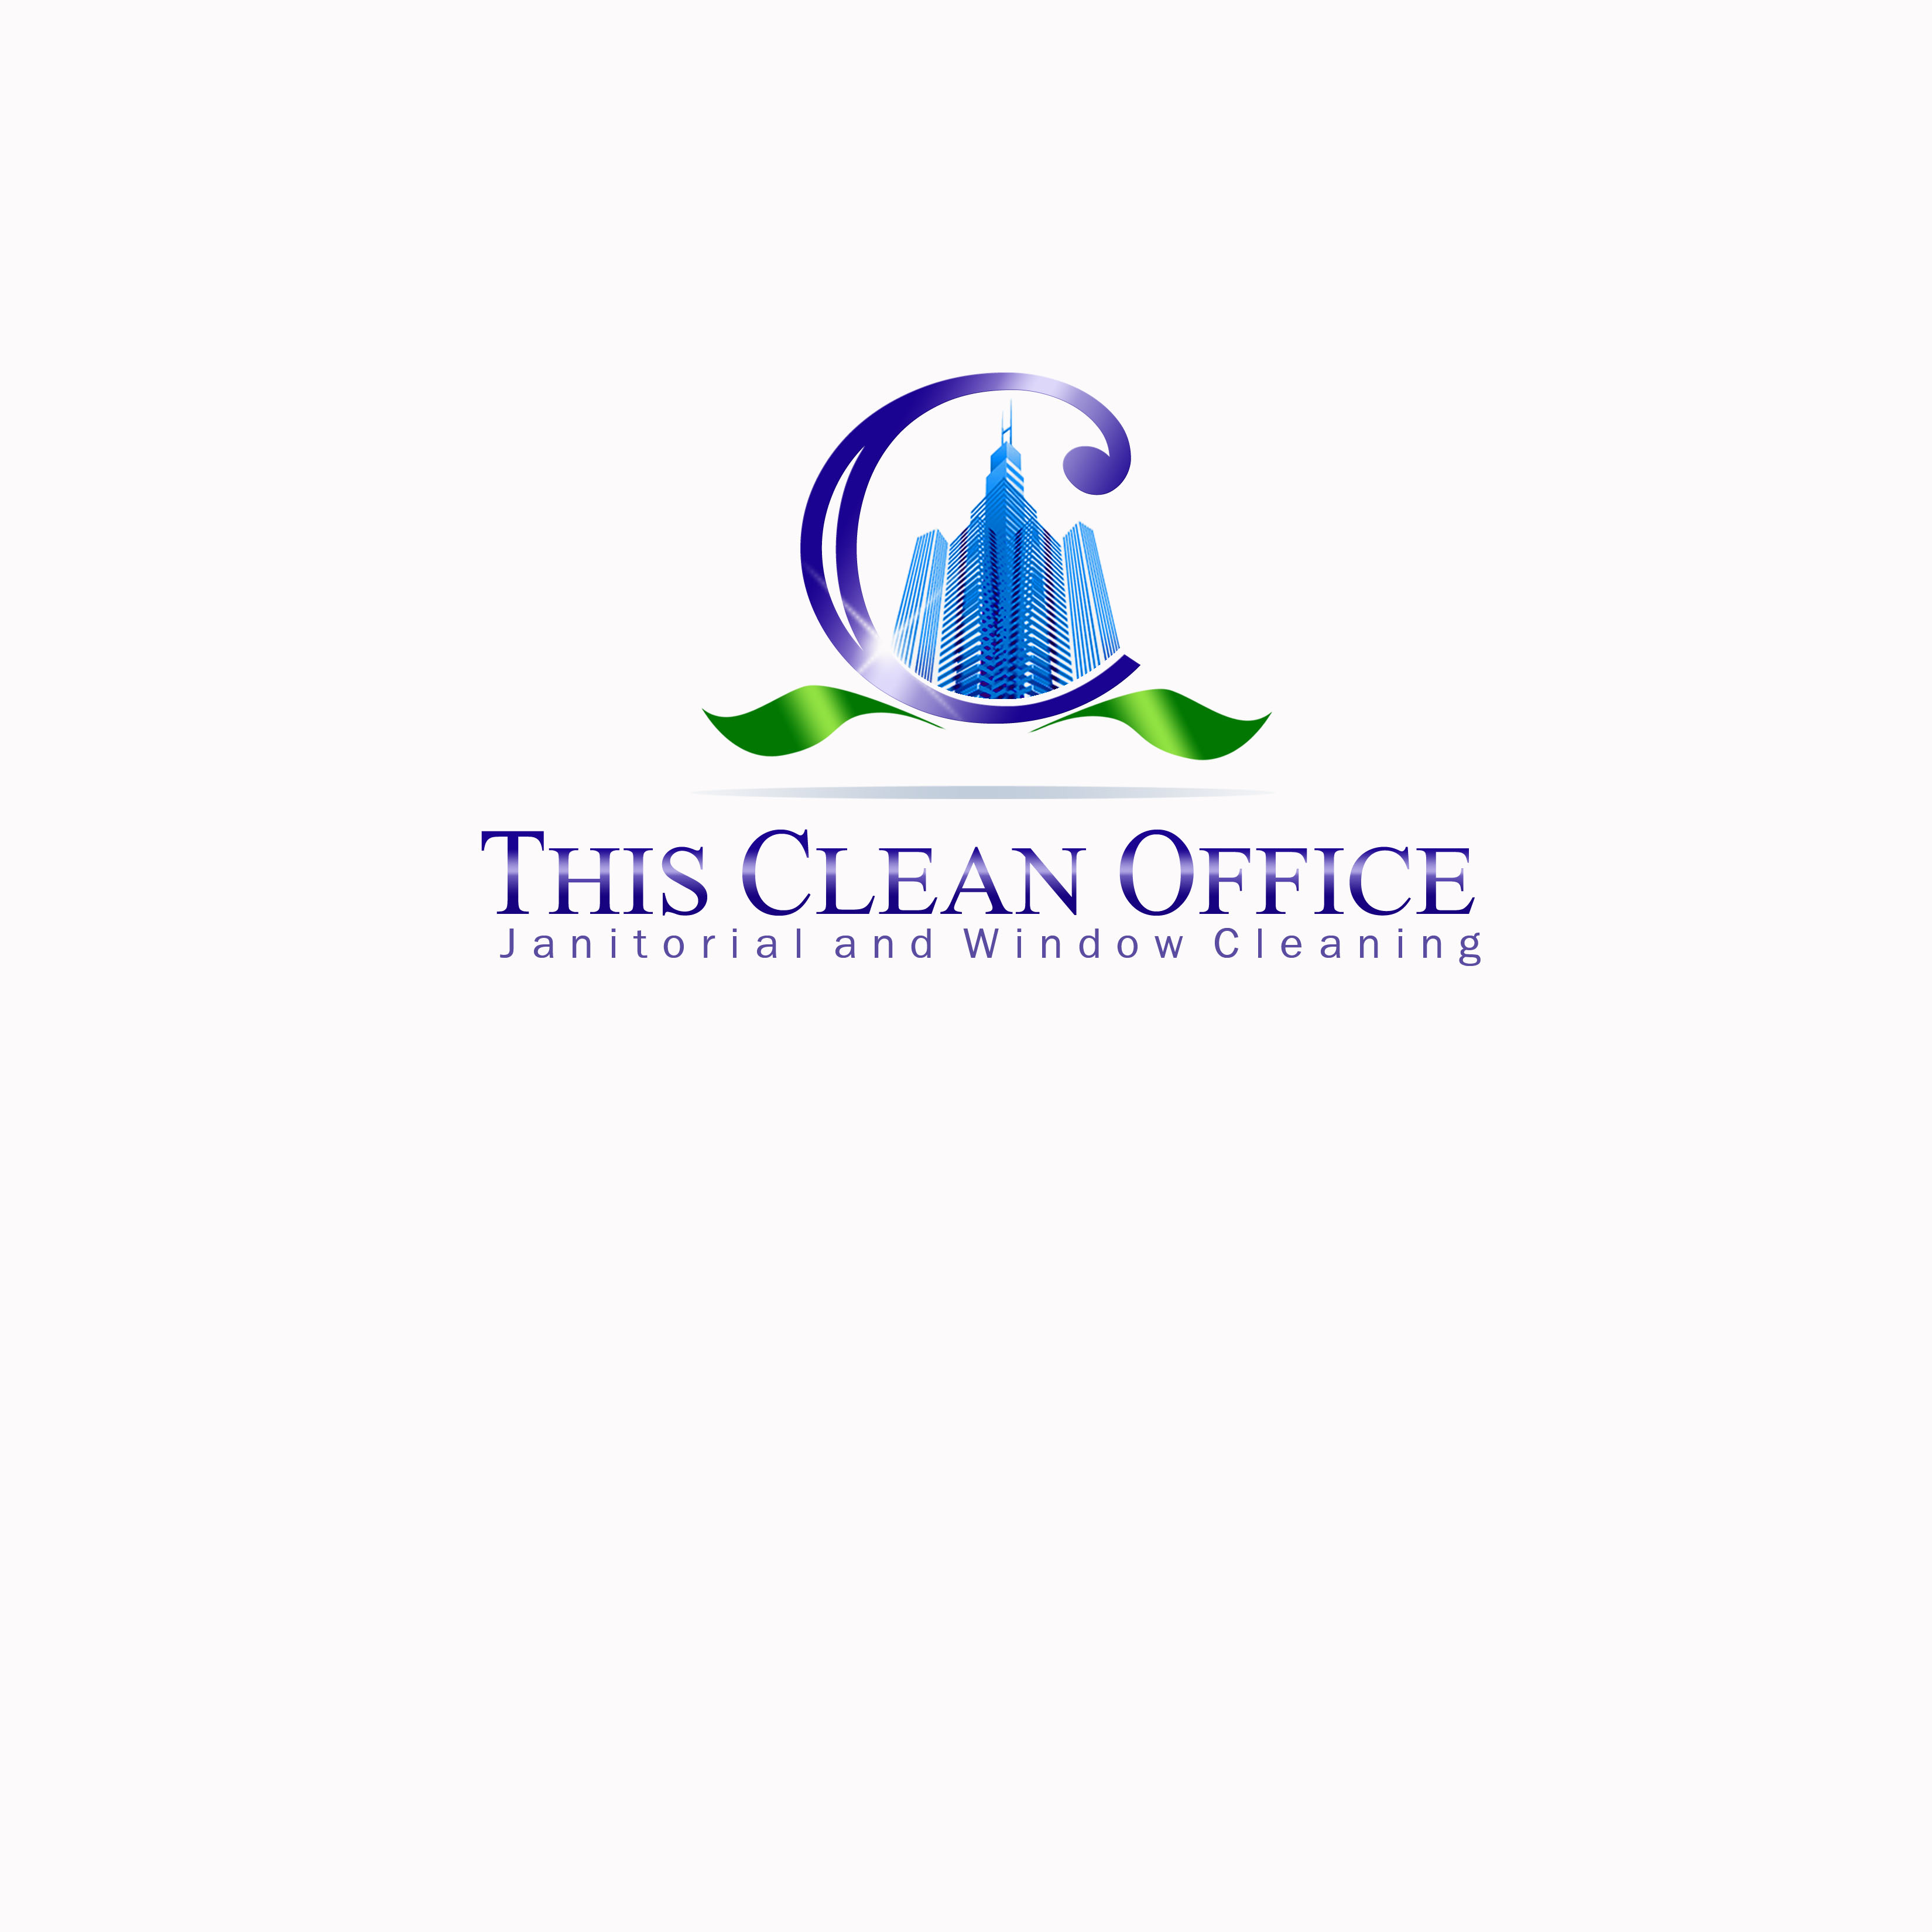 Logo Design by Allan Esclamado - Entry No. 84 in the Logo Design Contest Professional and Unforgettable Logo Design for This Clean Office.